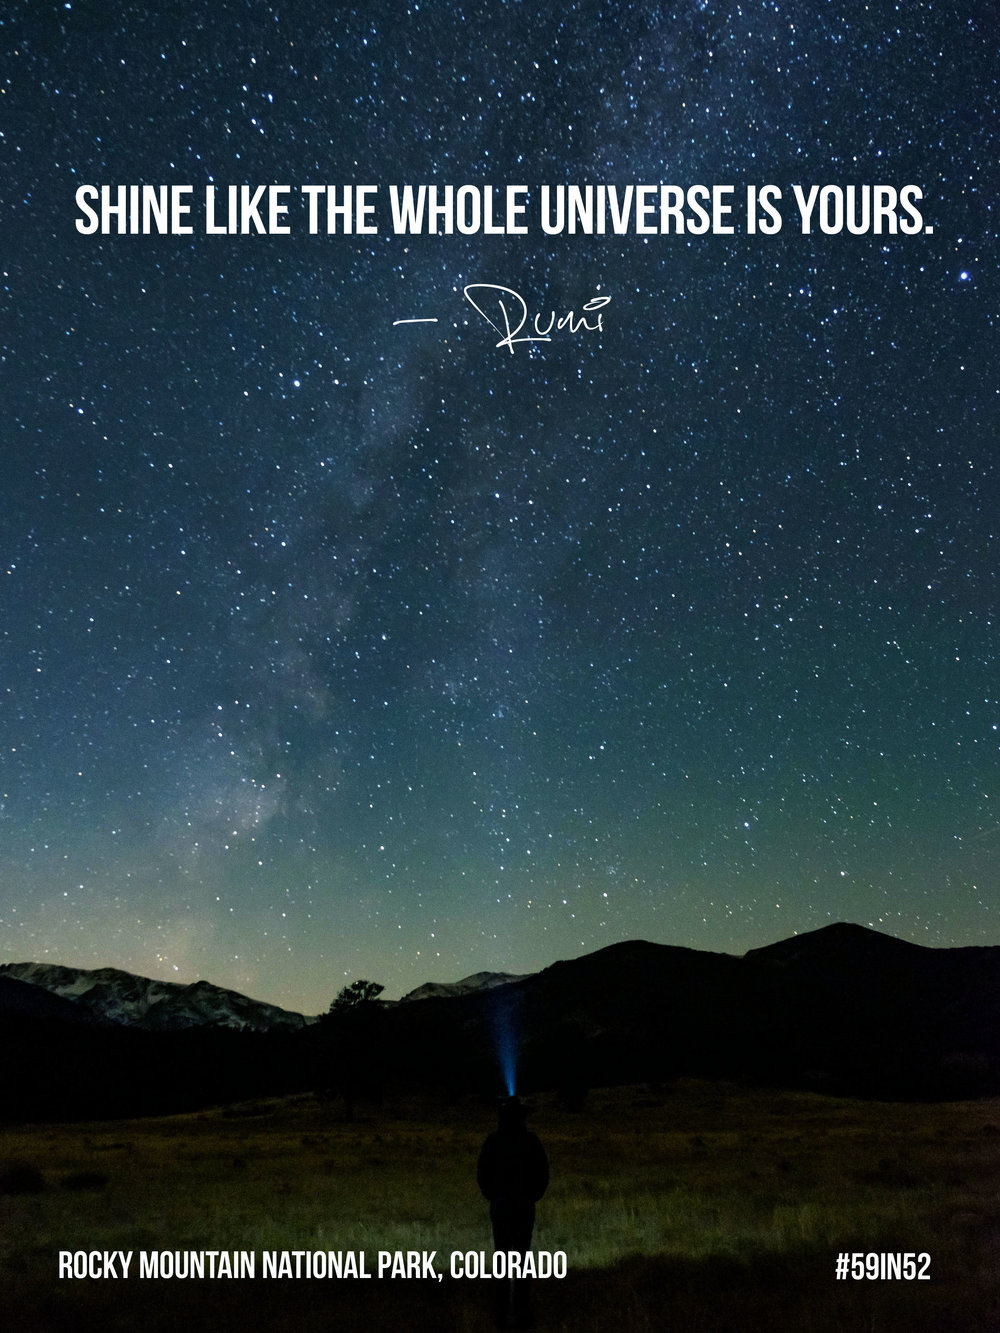 """Shine like the whole universe is yours."" - Rumi"